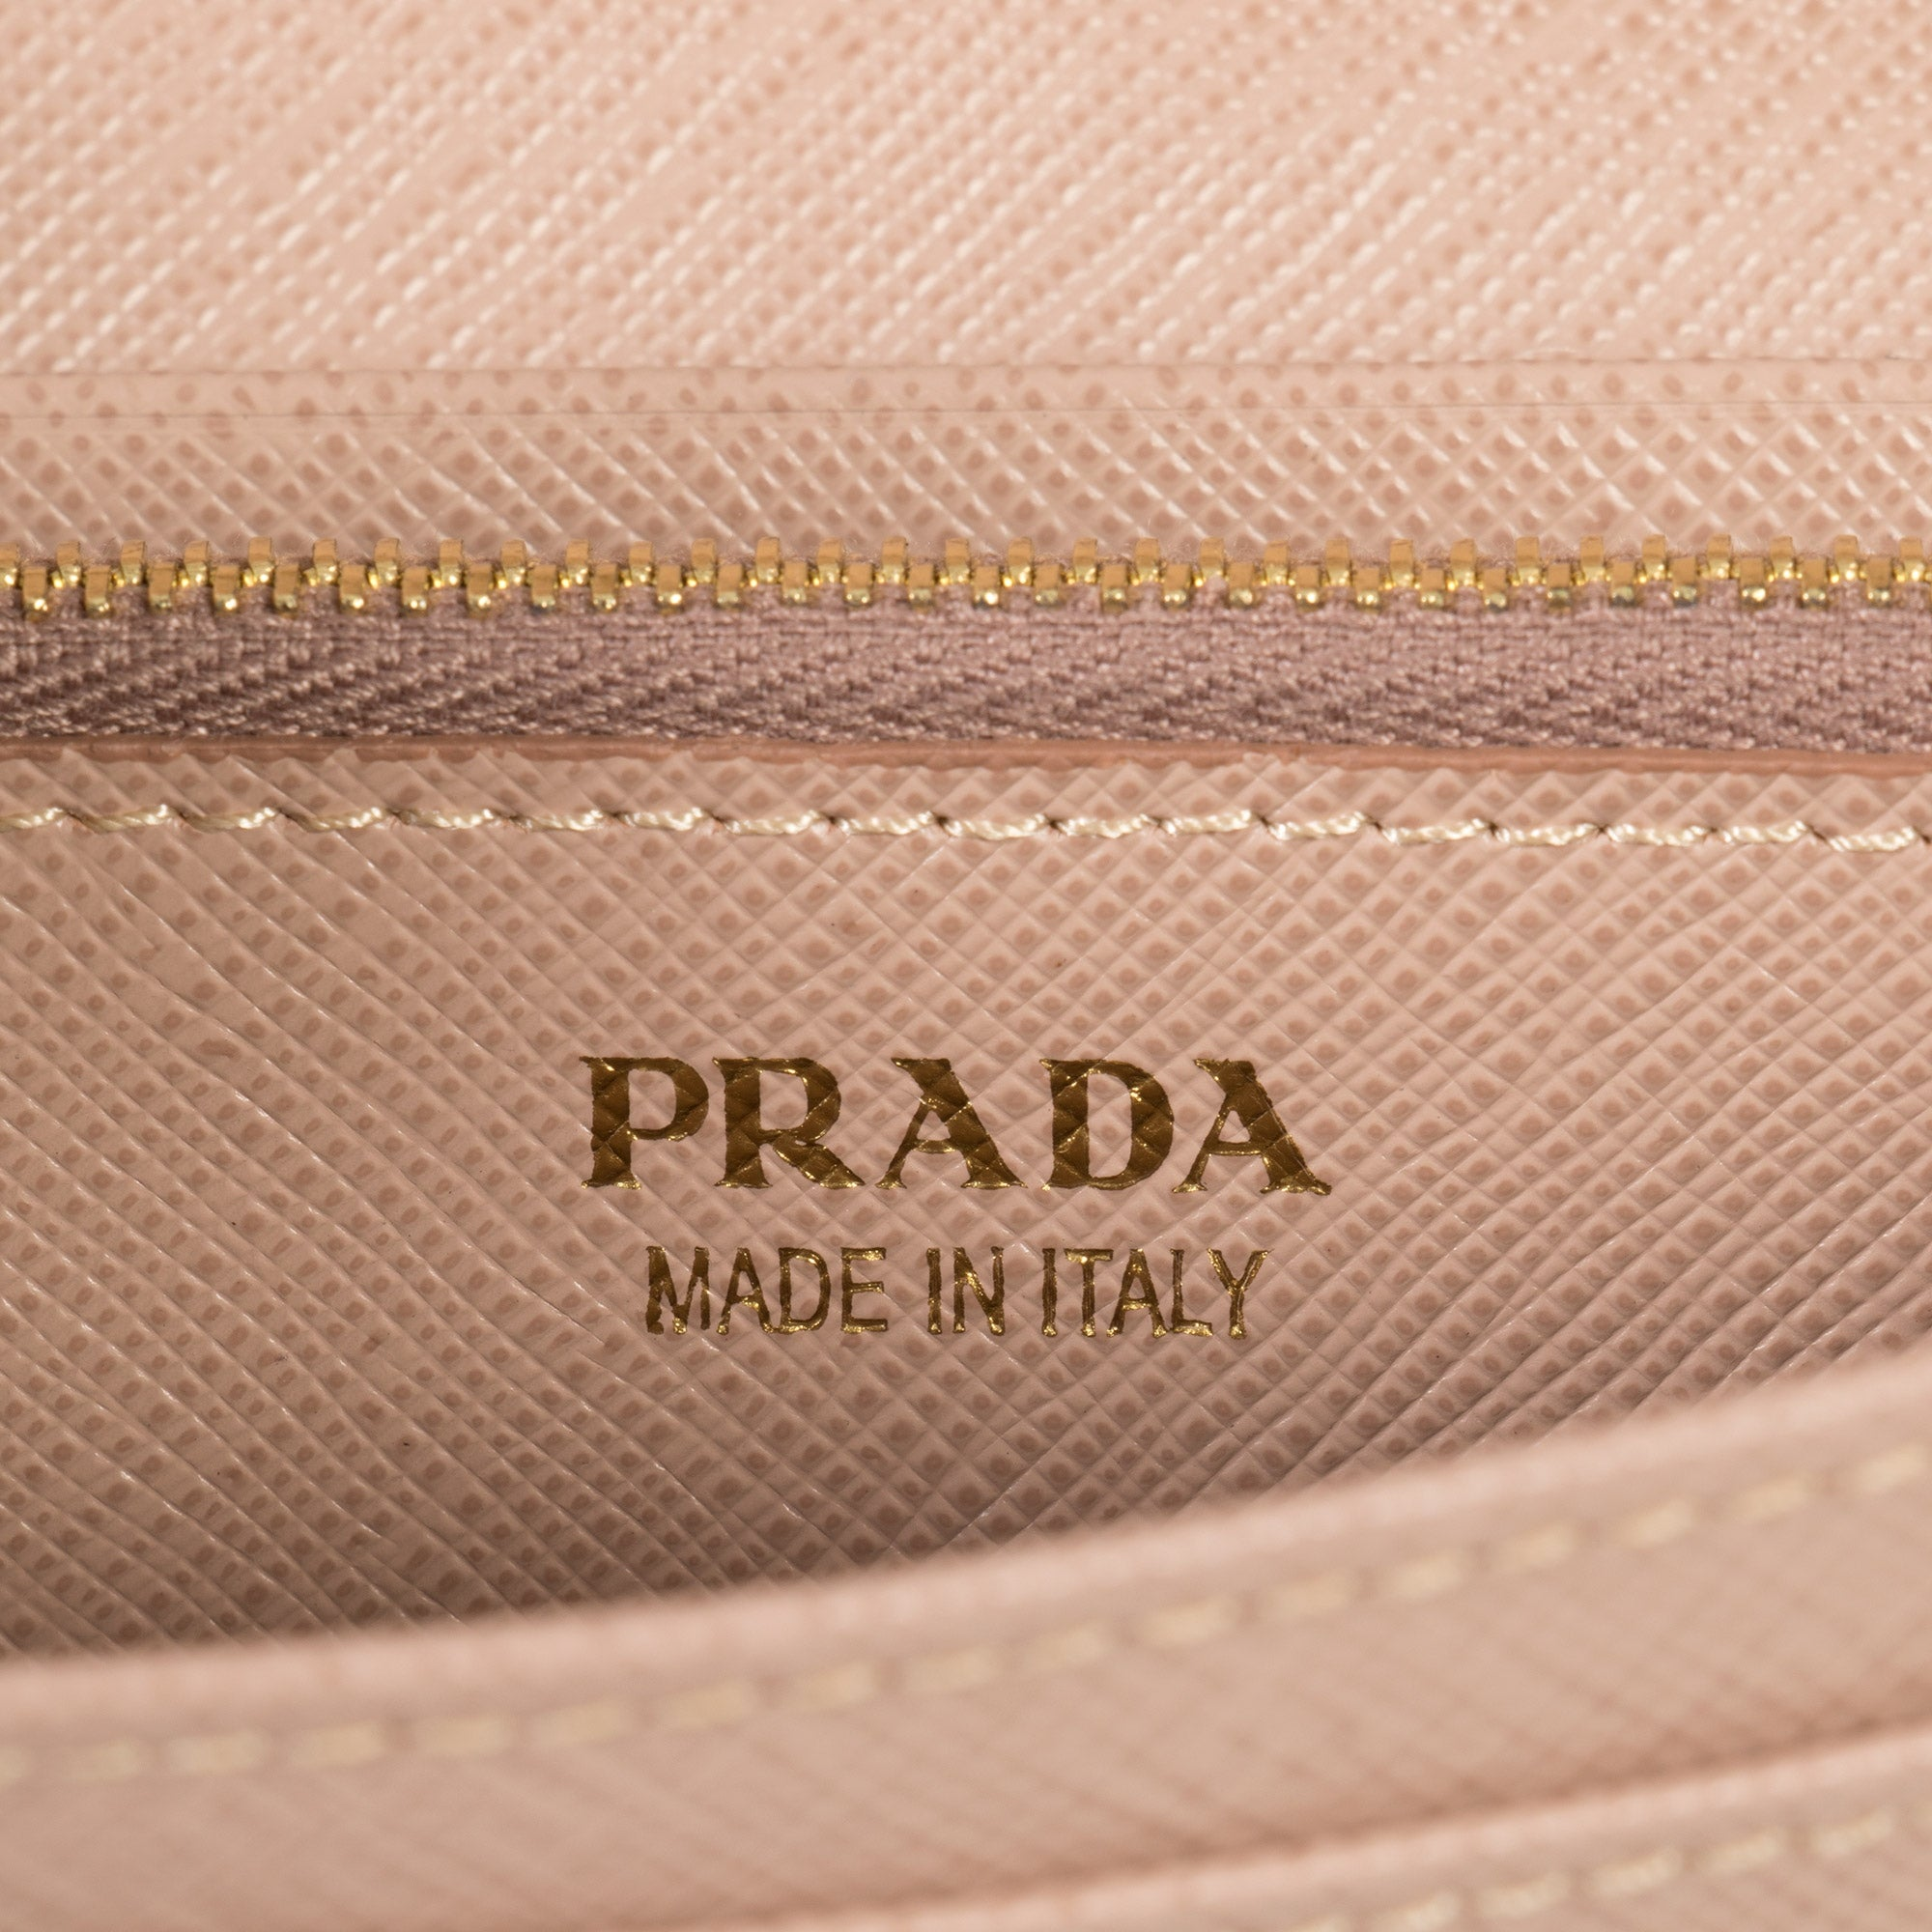 4f1f4fa699df Shop Prada Cameo Saffiano Leather Flap Wallet 1MH132 QWA F0770 - Free  Shipping Today - Overstock - 23082886